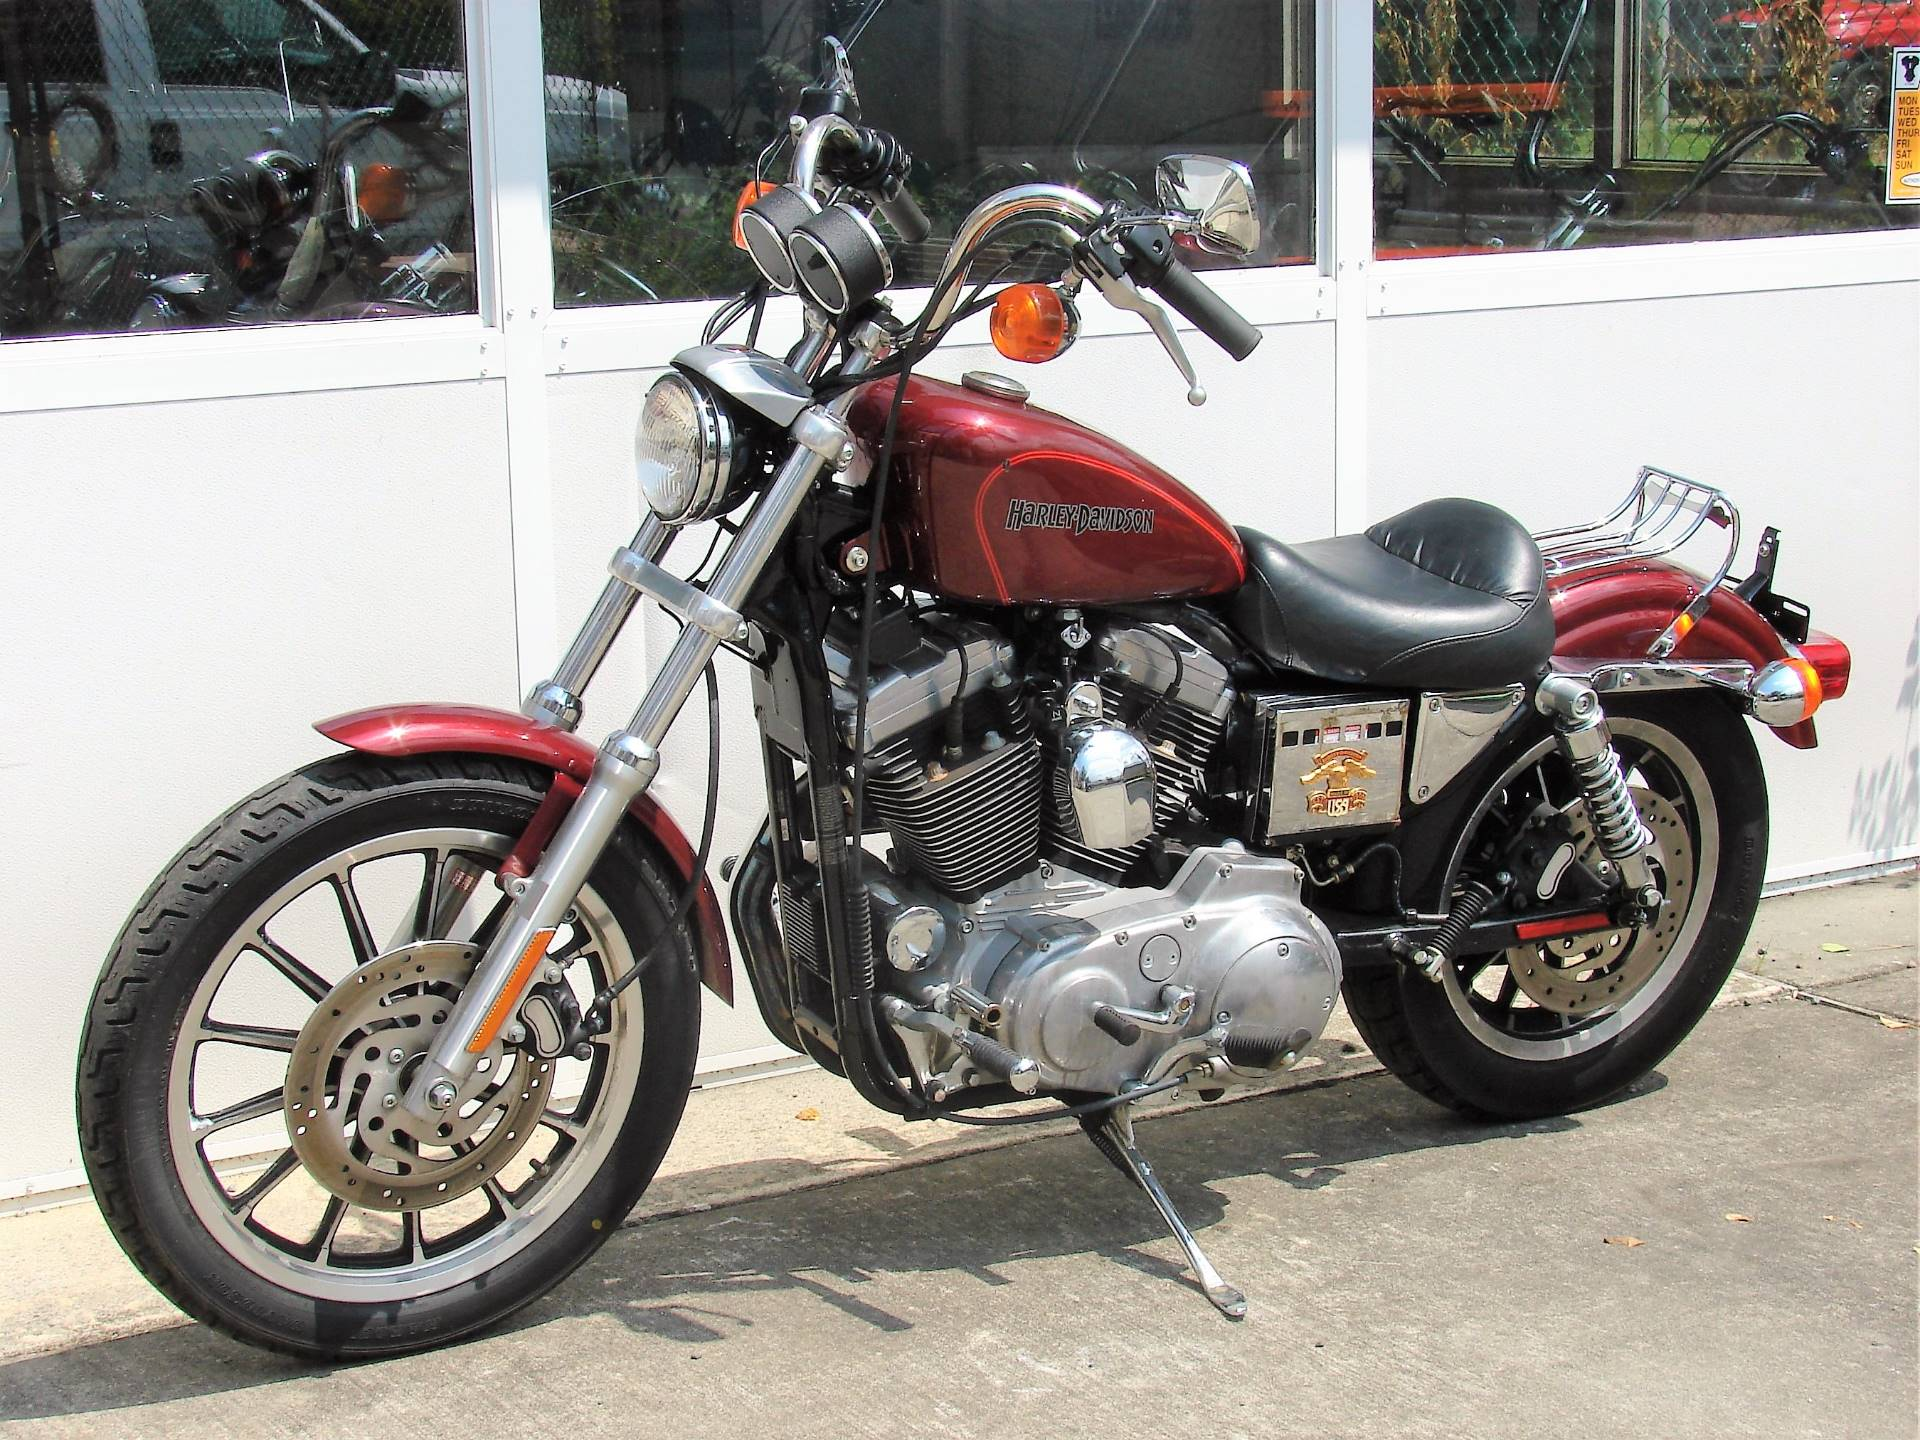 2001 Harley-Davidson XL 1200 Sportster  (EVO) in Williamstown, New Jersey - Photo 17